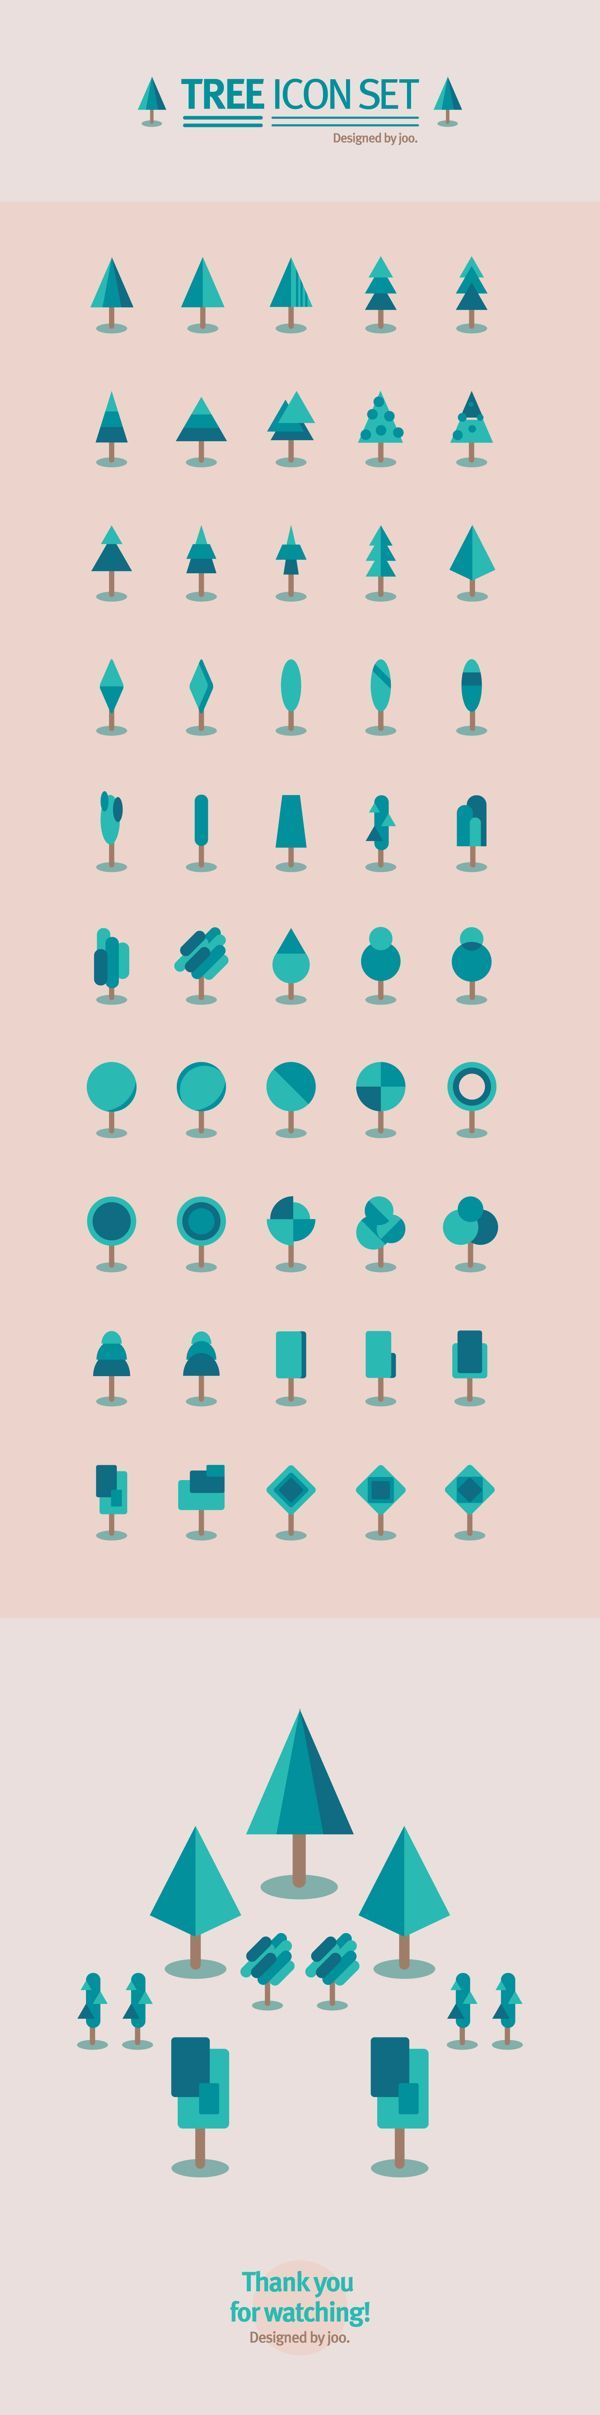 50 tree icon set by joo eunjeong, via Behance